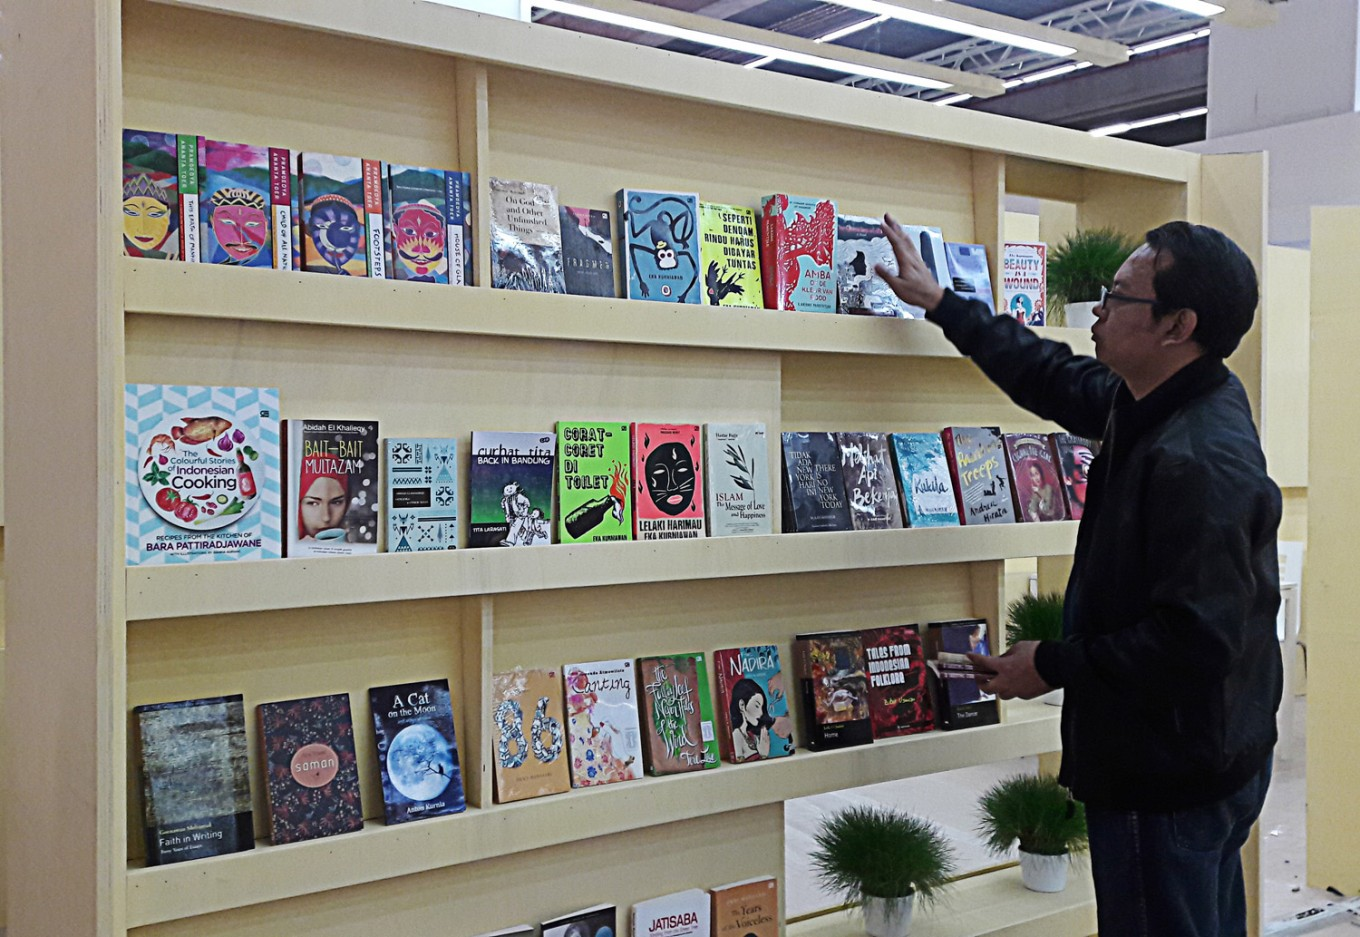 Indonesians struggle to promote books abroad